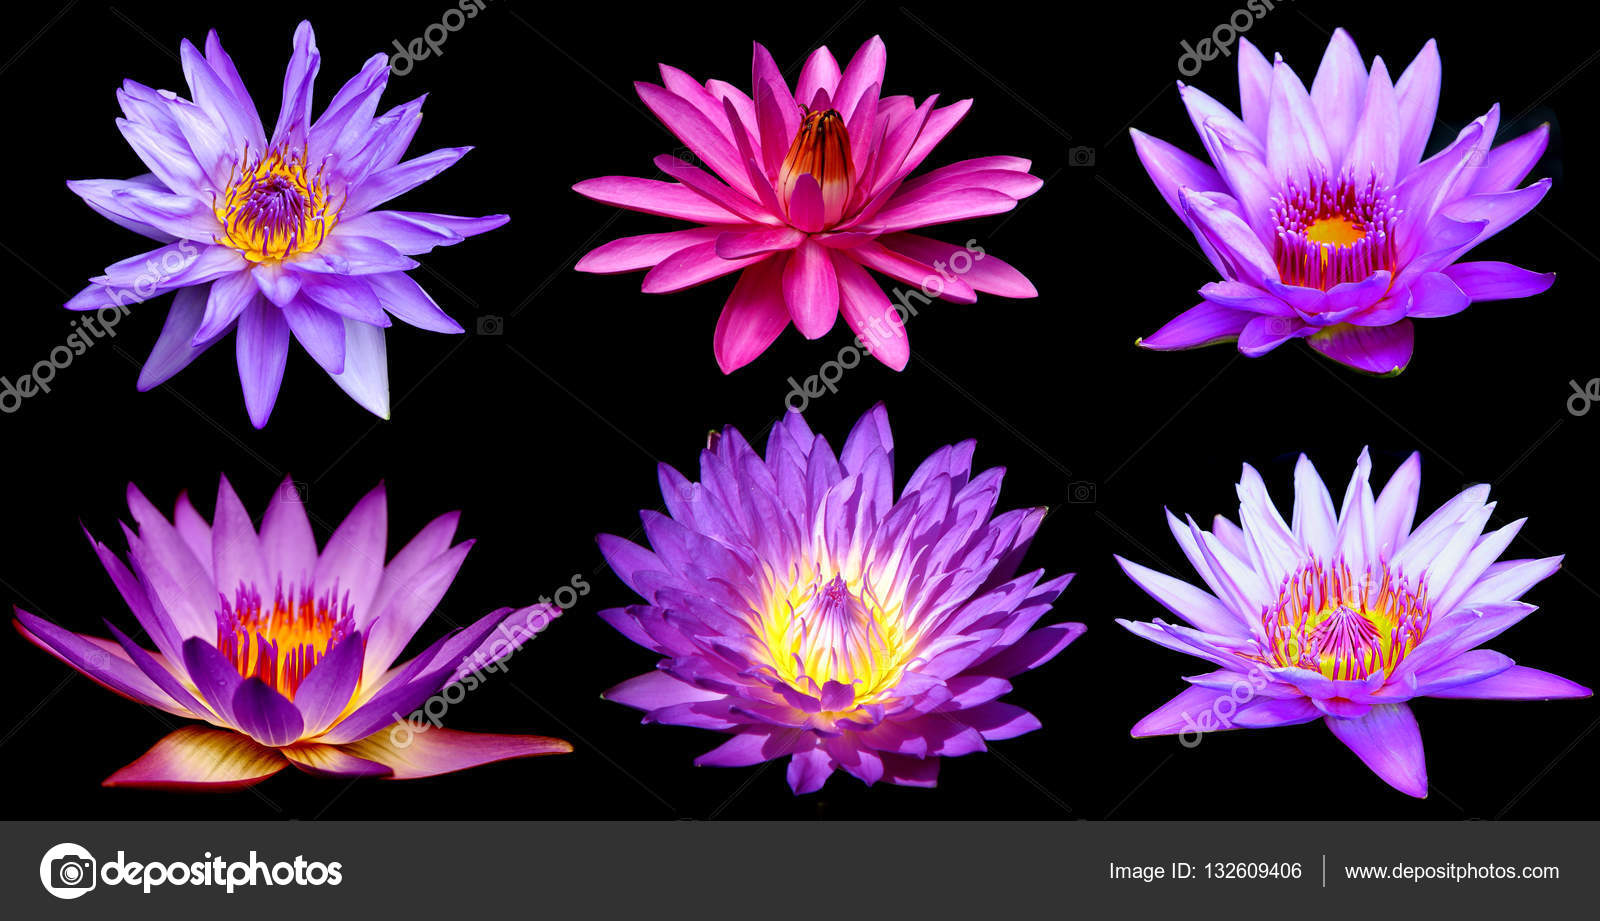 Purple water lily flower lotus over black background top view purple water lily flower lotus over black background top view stock photo izmirmasajfo